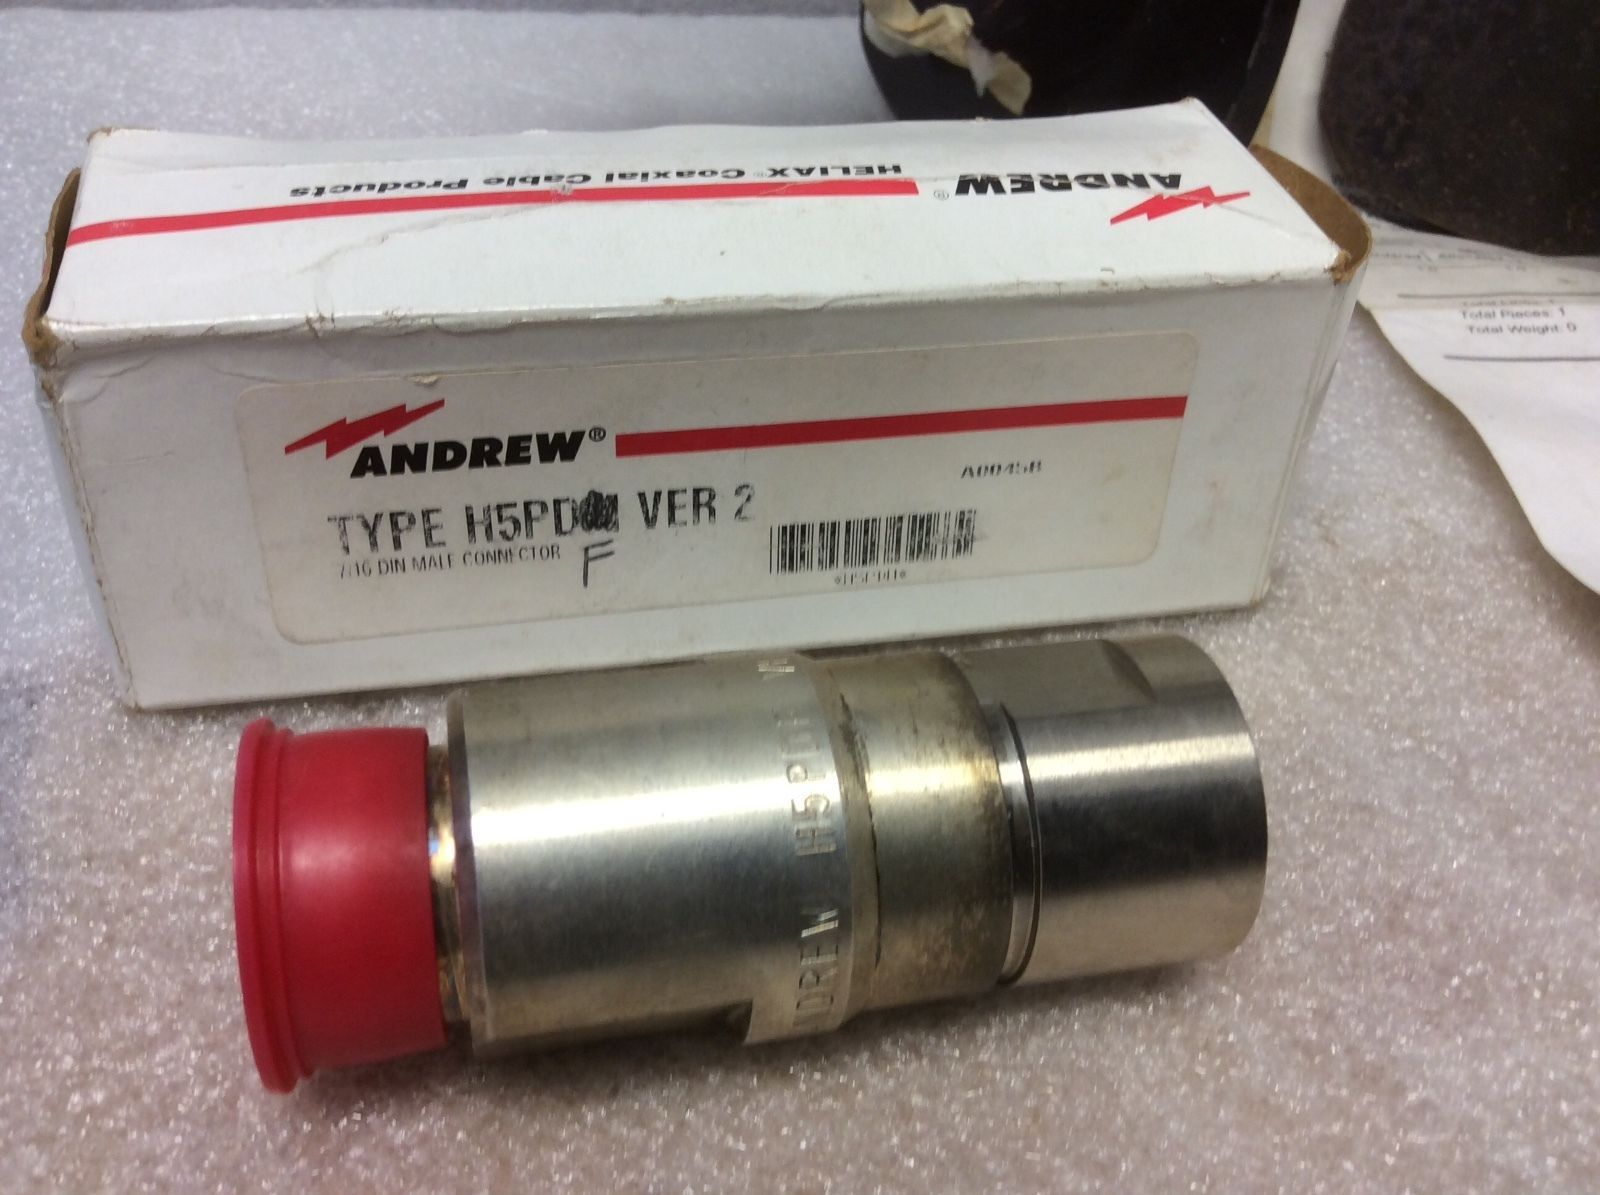 ANDREW HELIAX H5PDF CONNECTOR 7/16 DIN FEMALE VERSION 2 NOS NEW RARE SALE $59 - $58.41